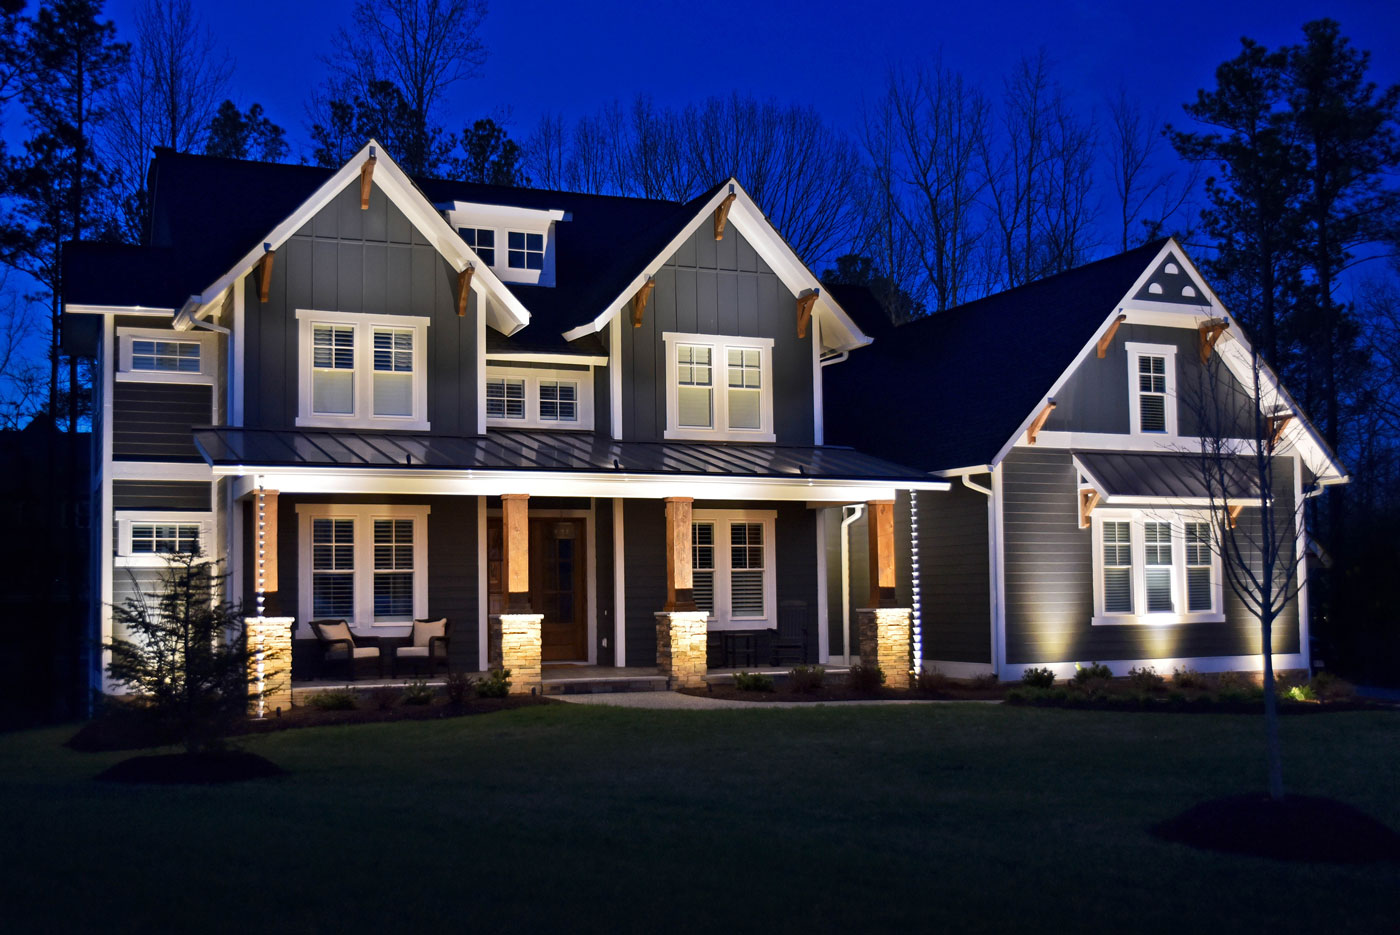 Charlotte Decorative Outdoor Lighting | Outdoor Lighting Perspectives